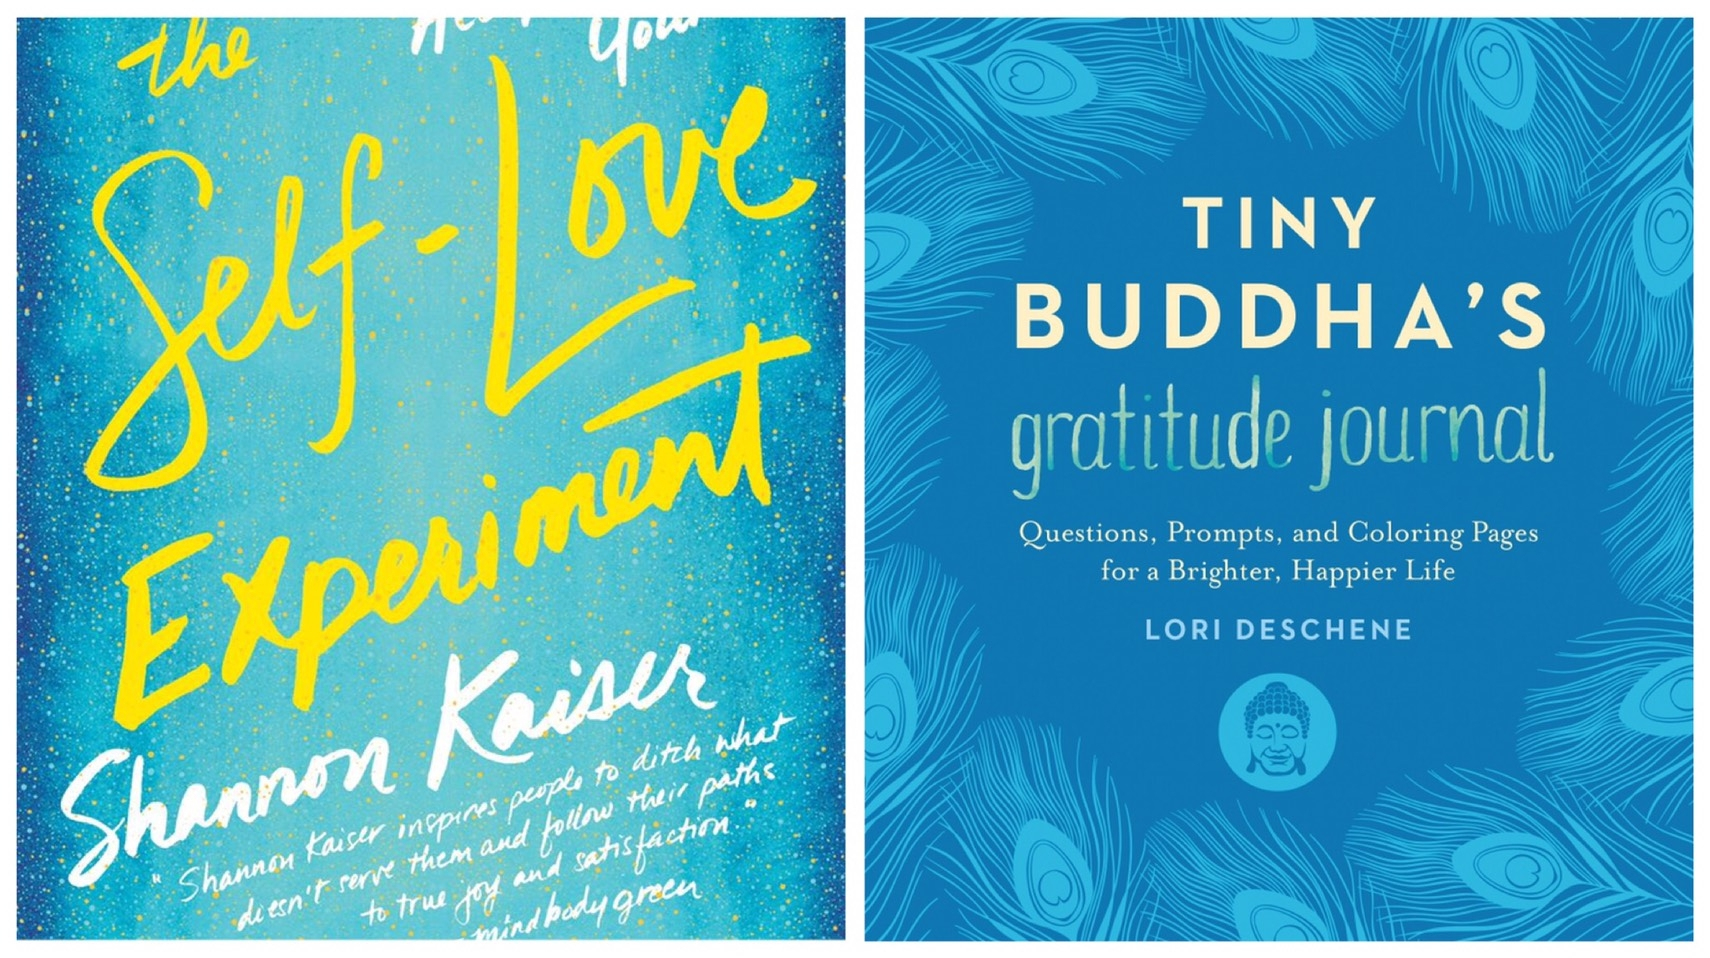 kindness coloring pages - book giveaway tiny buddhas gratitude journal and the self love experiment